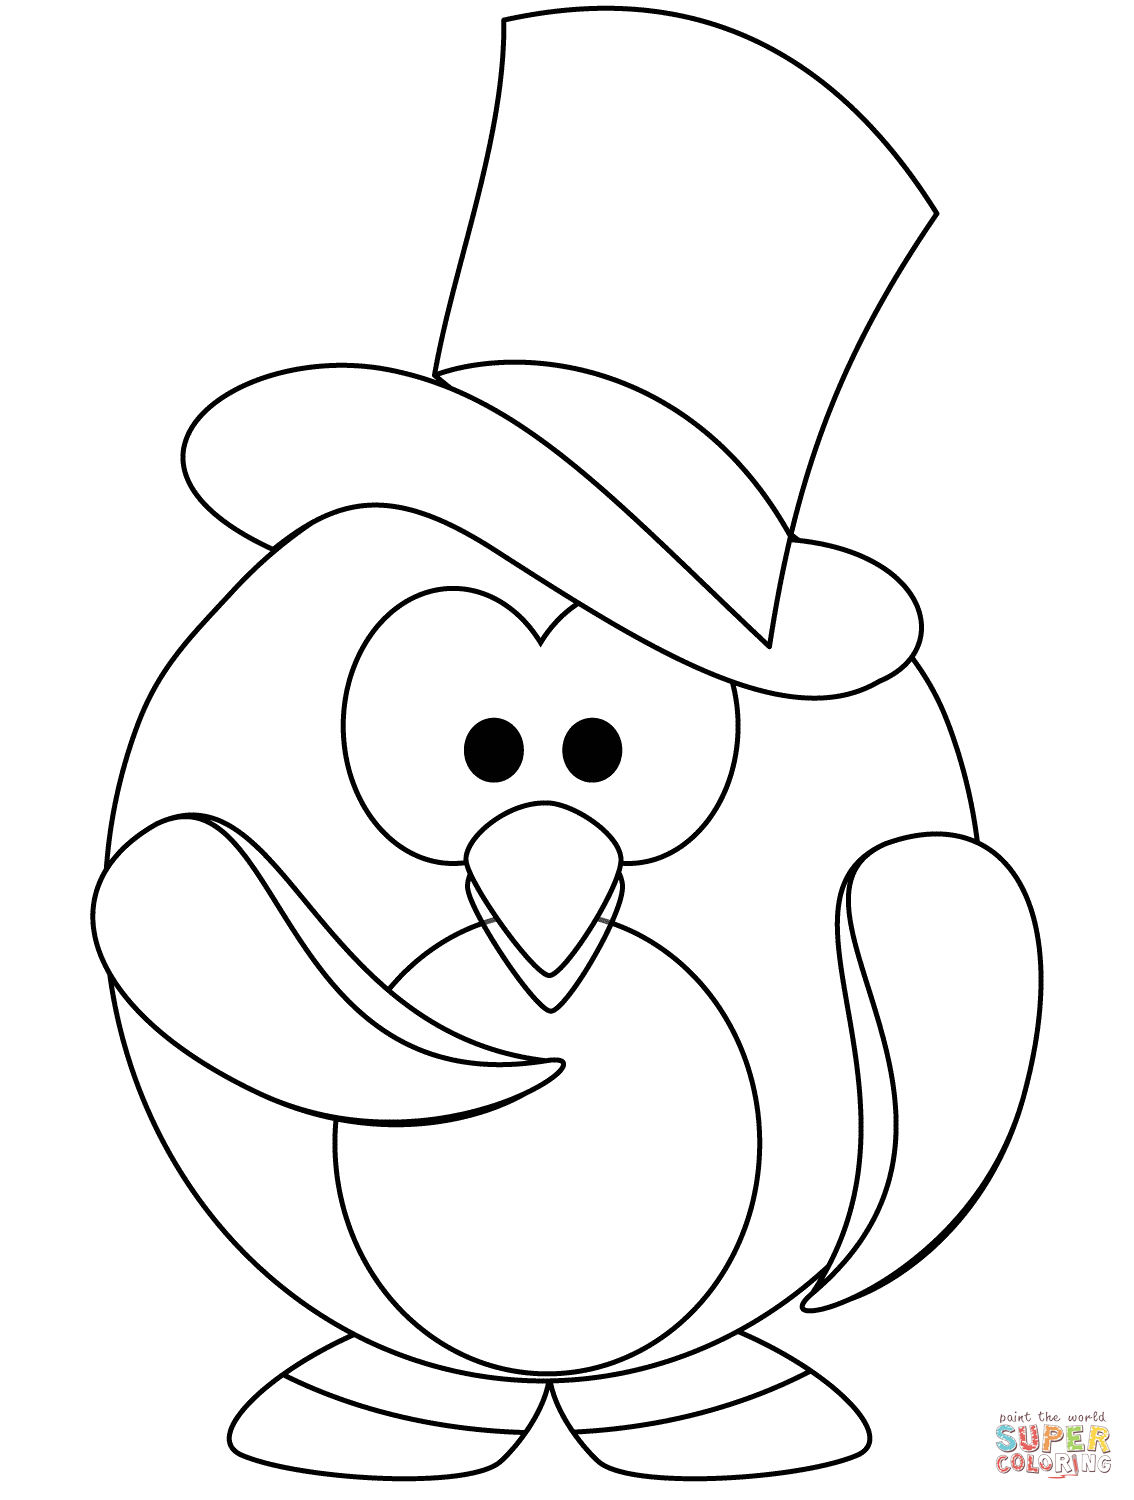 The Gentleman Penguin Coloring Page